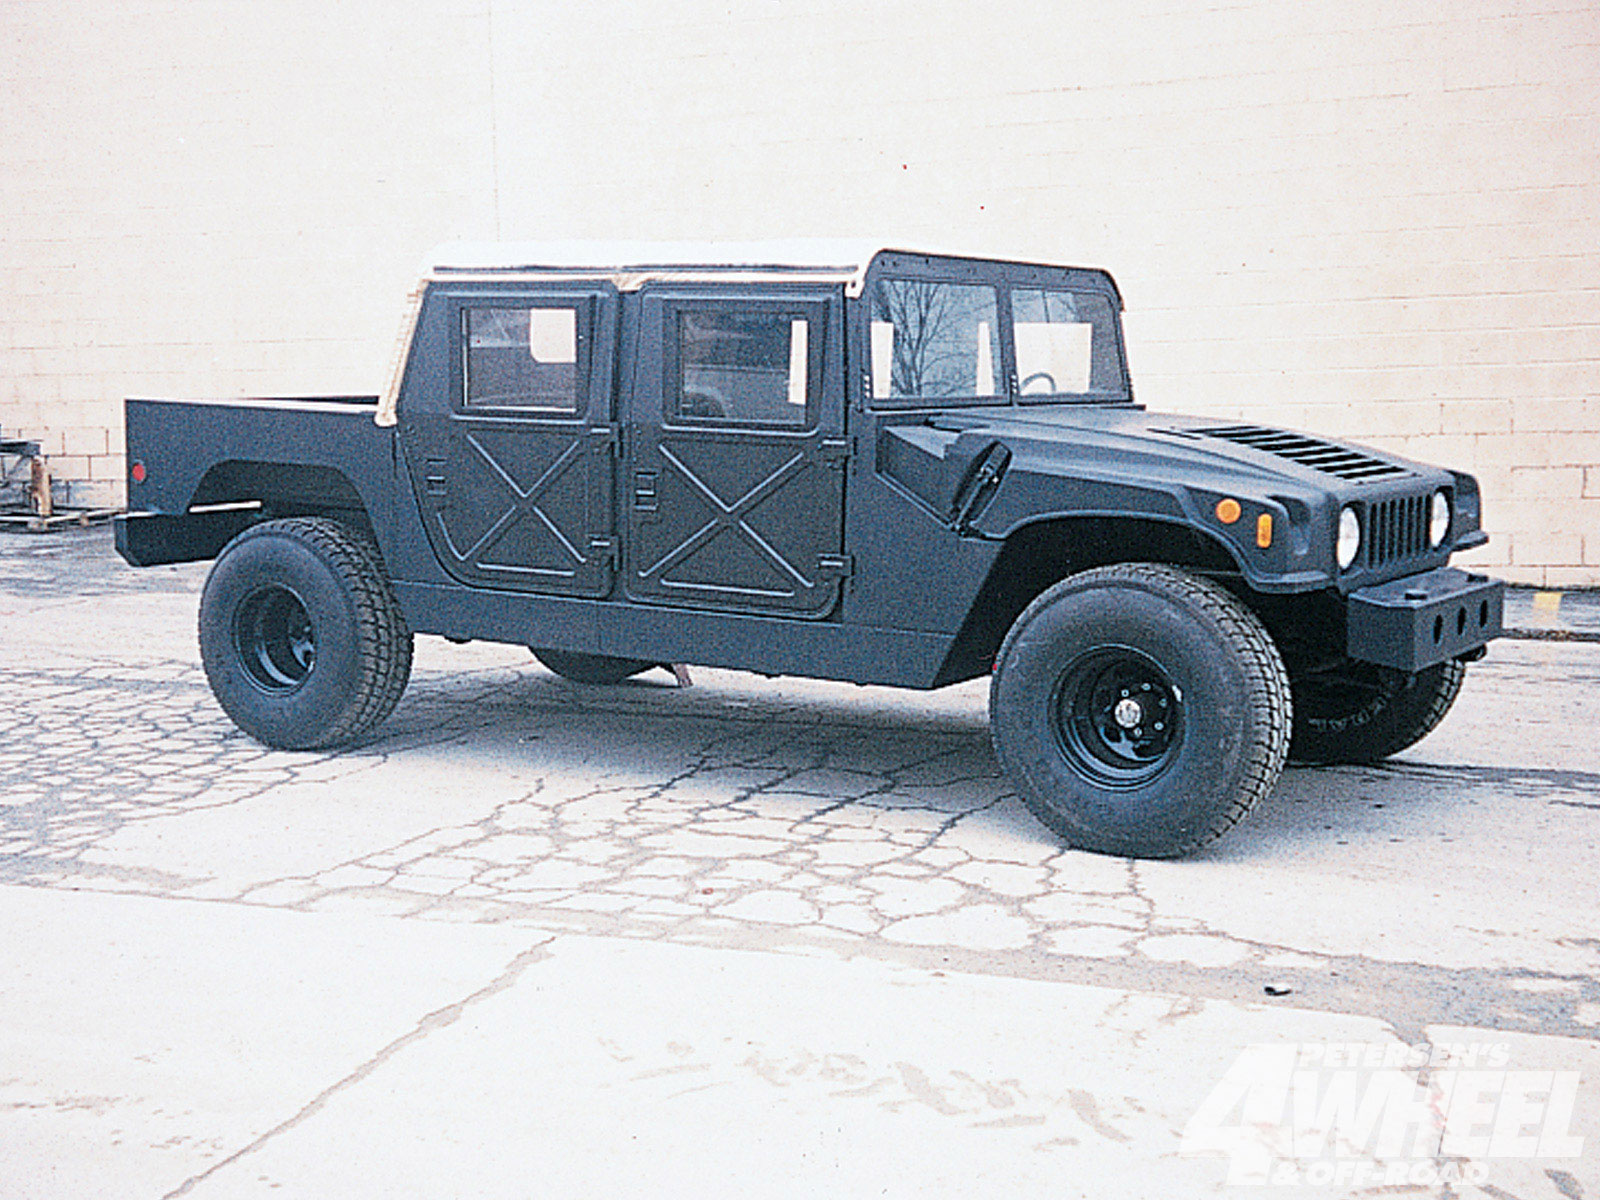 Shown here with a soft top and hard doors, the four-door Urban Gorilla mounts on a Suburban or domestic fullsize truck chassis. The basic kit is $4,995 for the two-door model and $5,495 for the four-door, but additional costs should be figured in because more than just the basic kit is needed to complete the buildup.